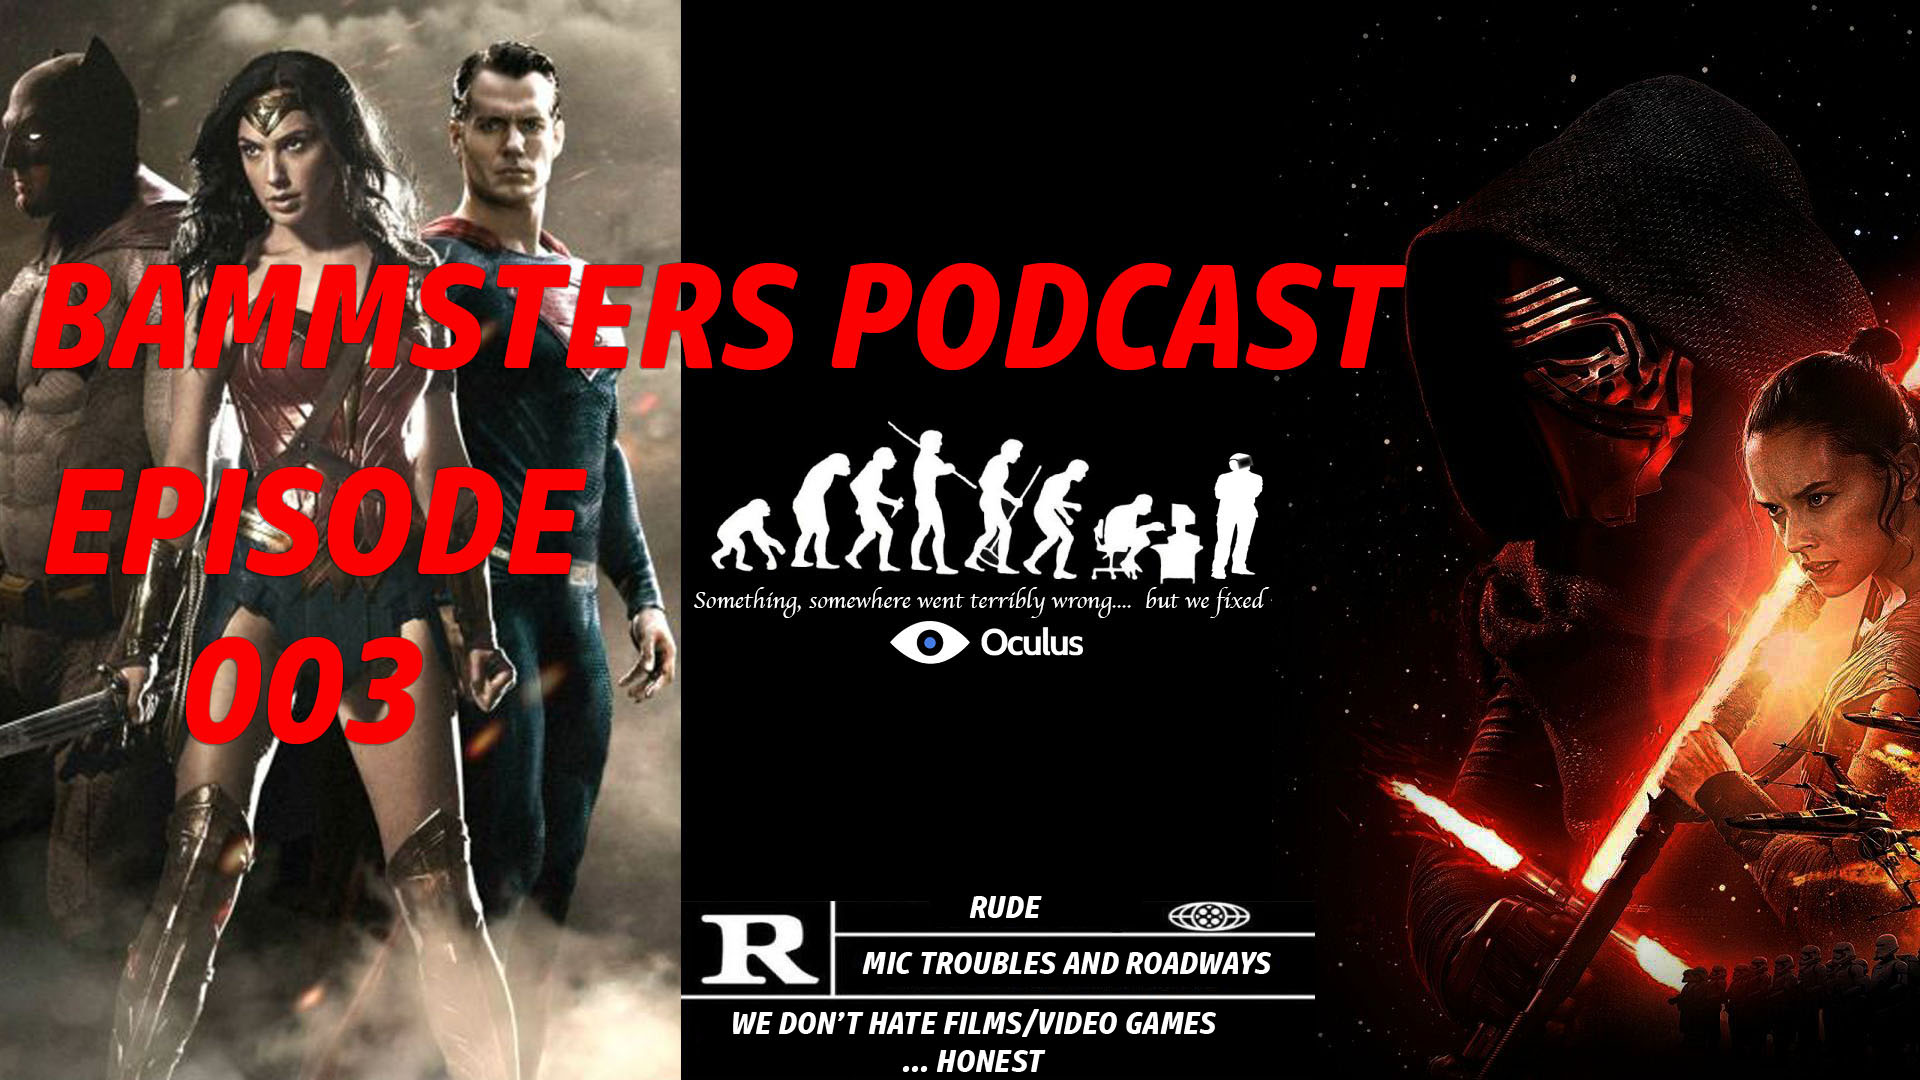 Rated-R – Movies, Bad Mics and More (003)